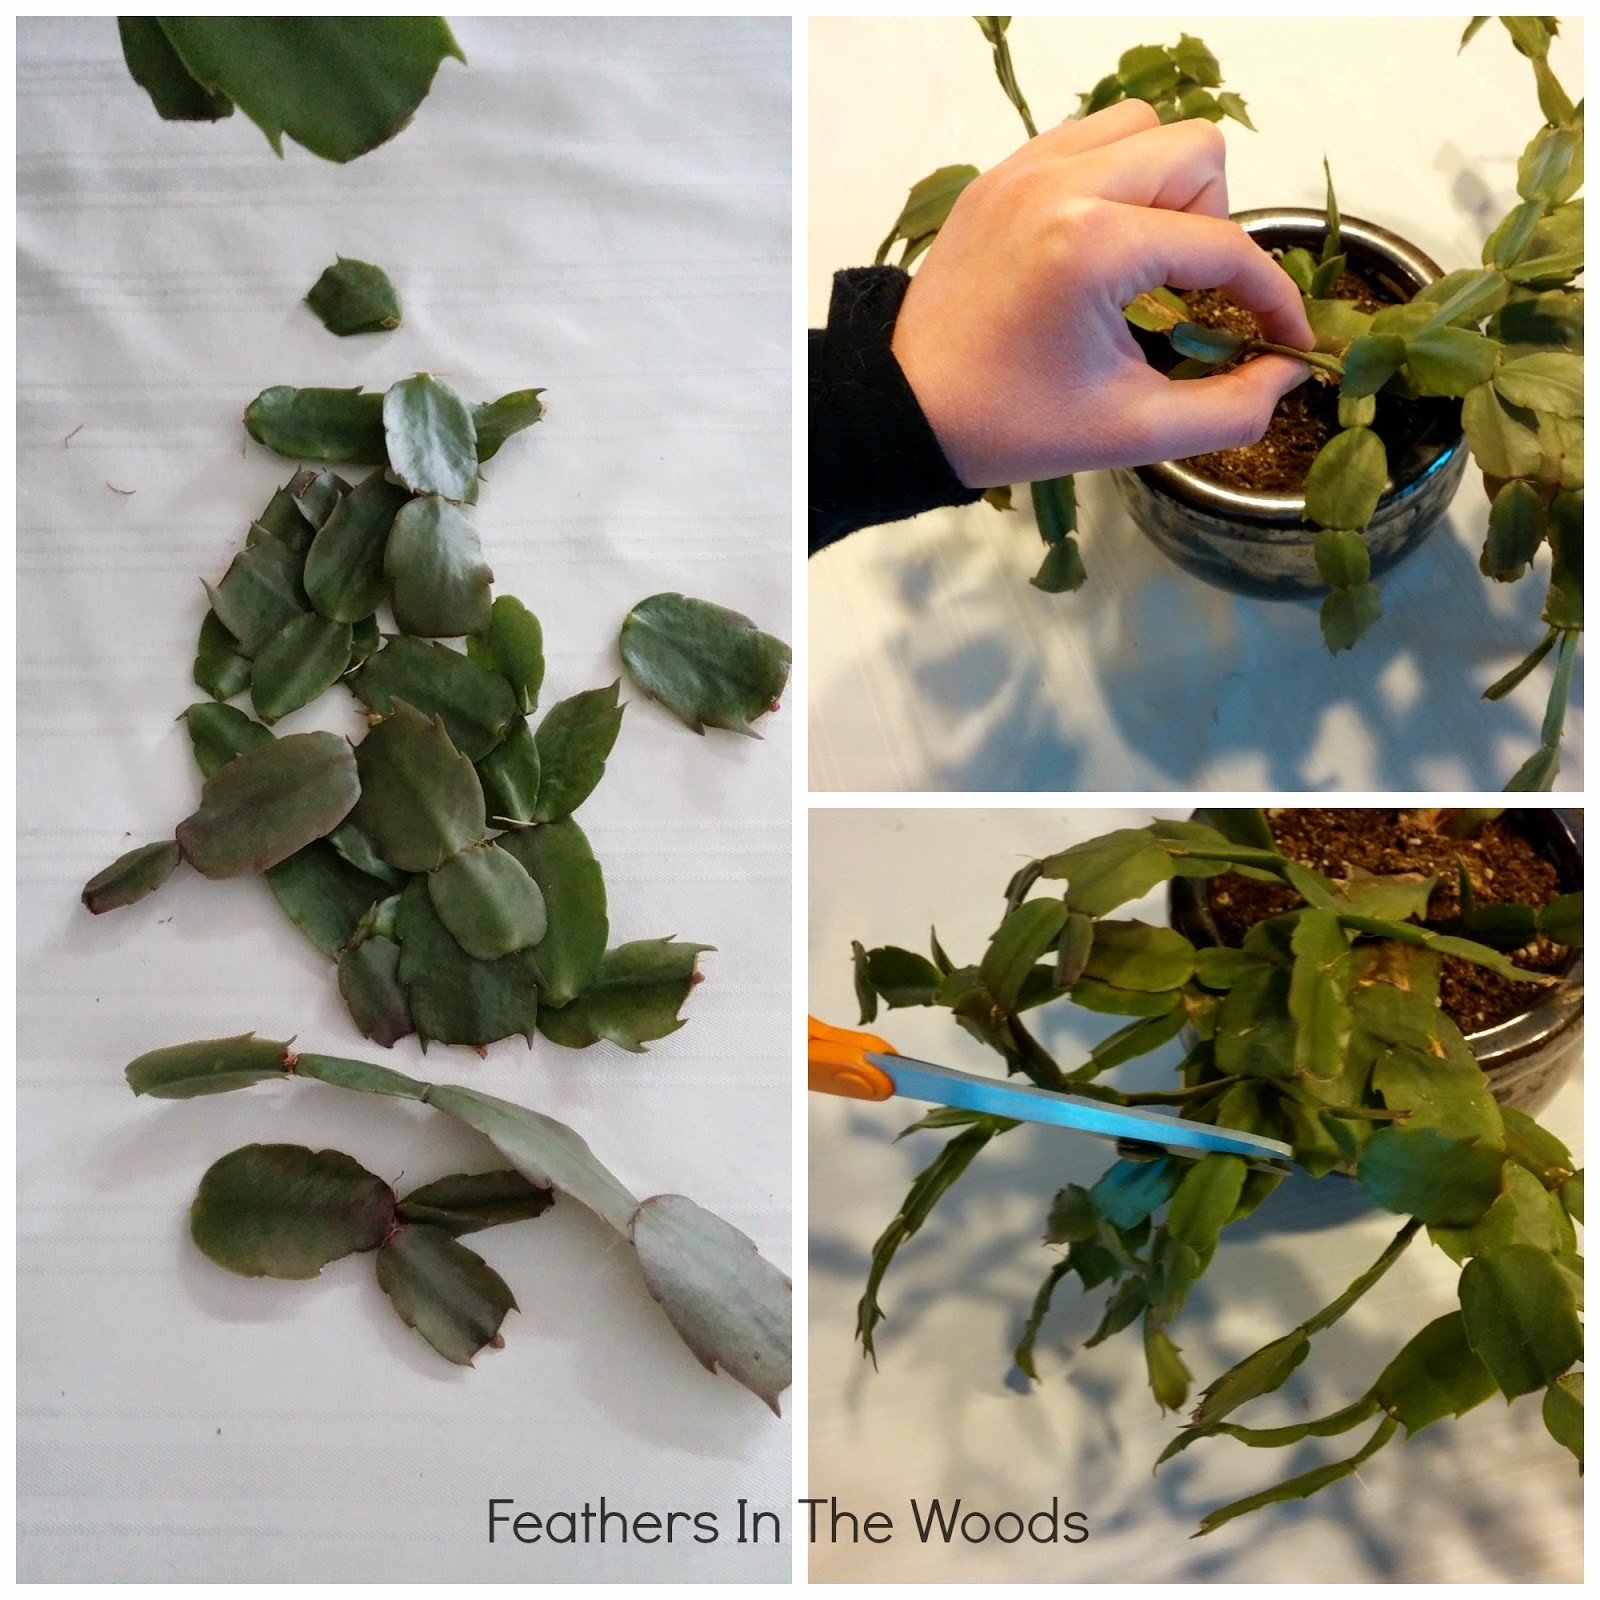 How I pruned the Christmas Cactus - Feathers in the woods